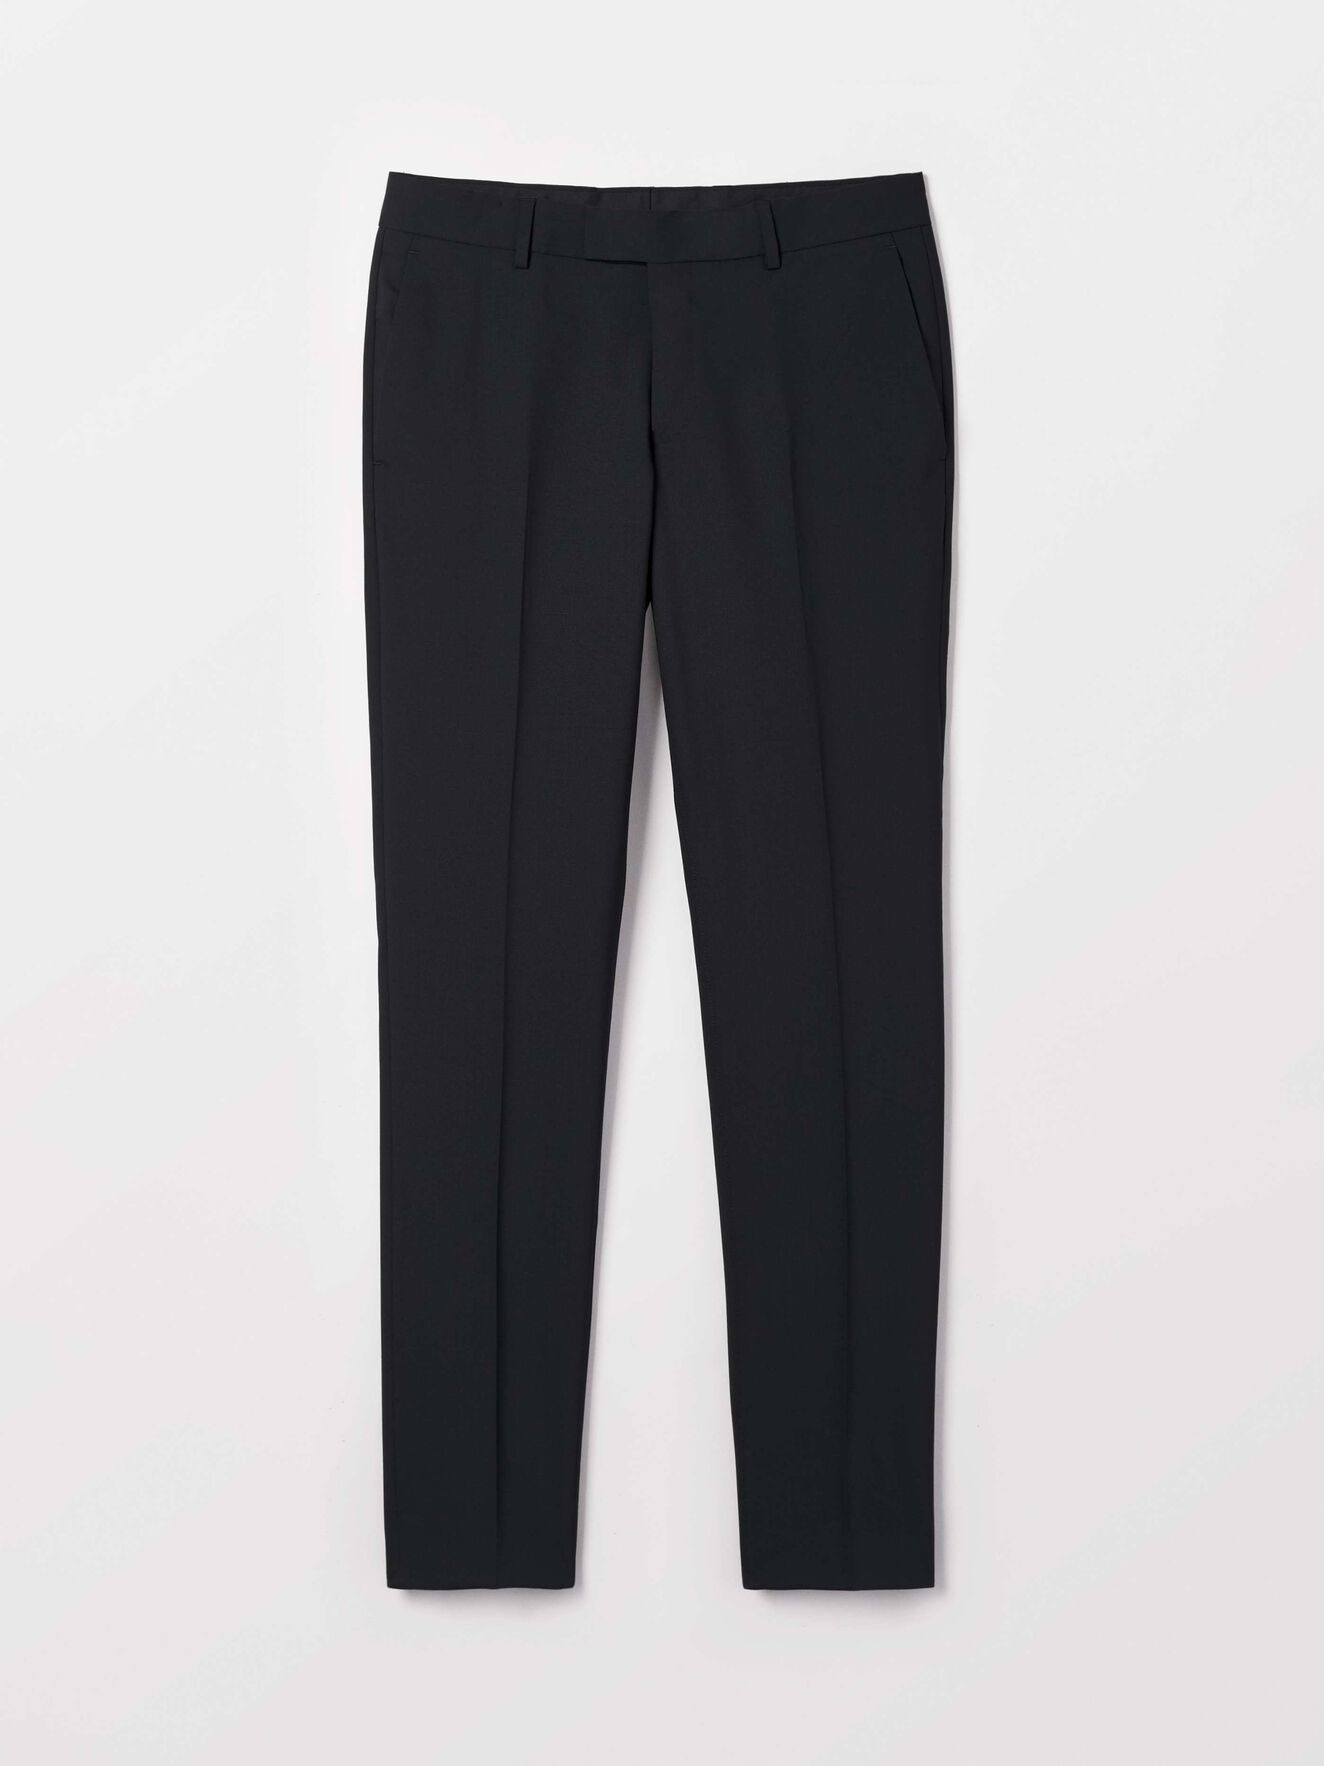 Gordon Trousers in Black from Tiger of Sweden